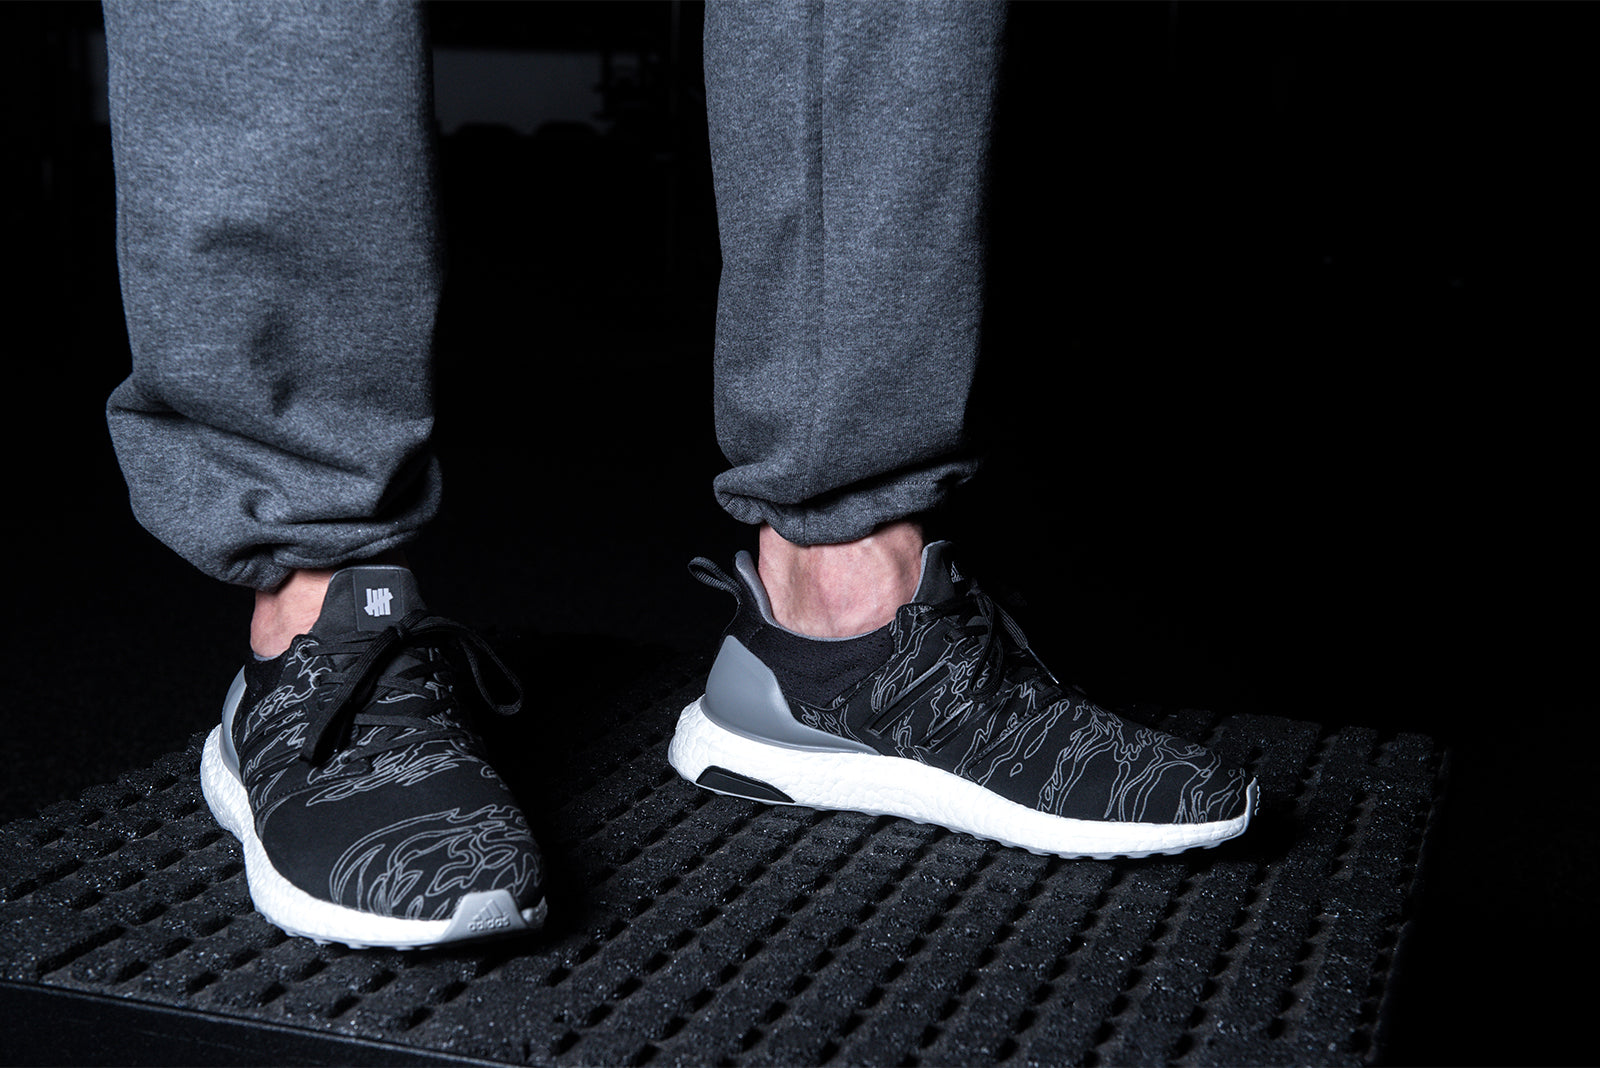 afadc44a298567 adidas Ultraboost x Undefeated BC0472 Core Black Core Black Price  £179.00.  Launch  Thursday 8th of November ONLINE  23 00GMT